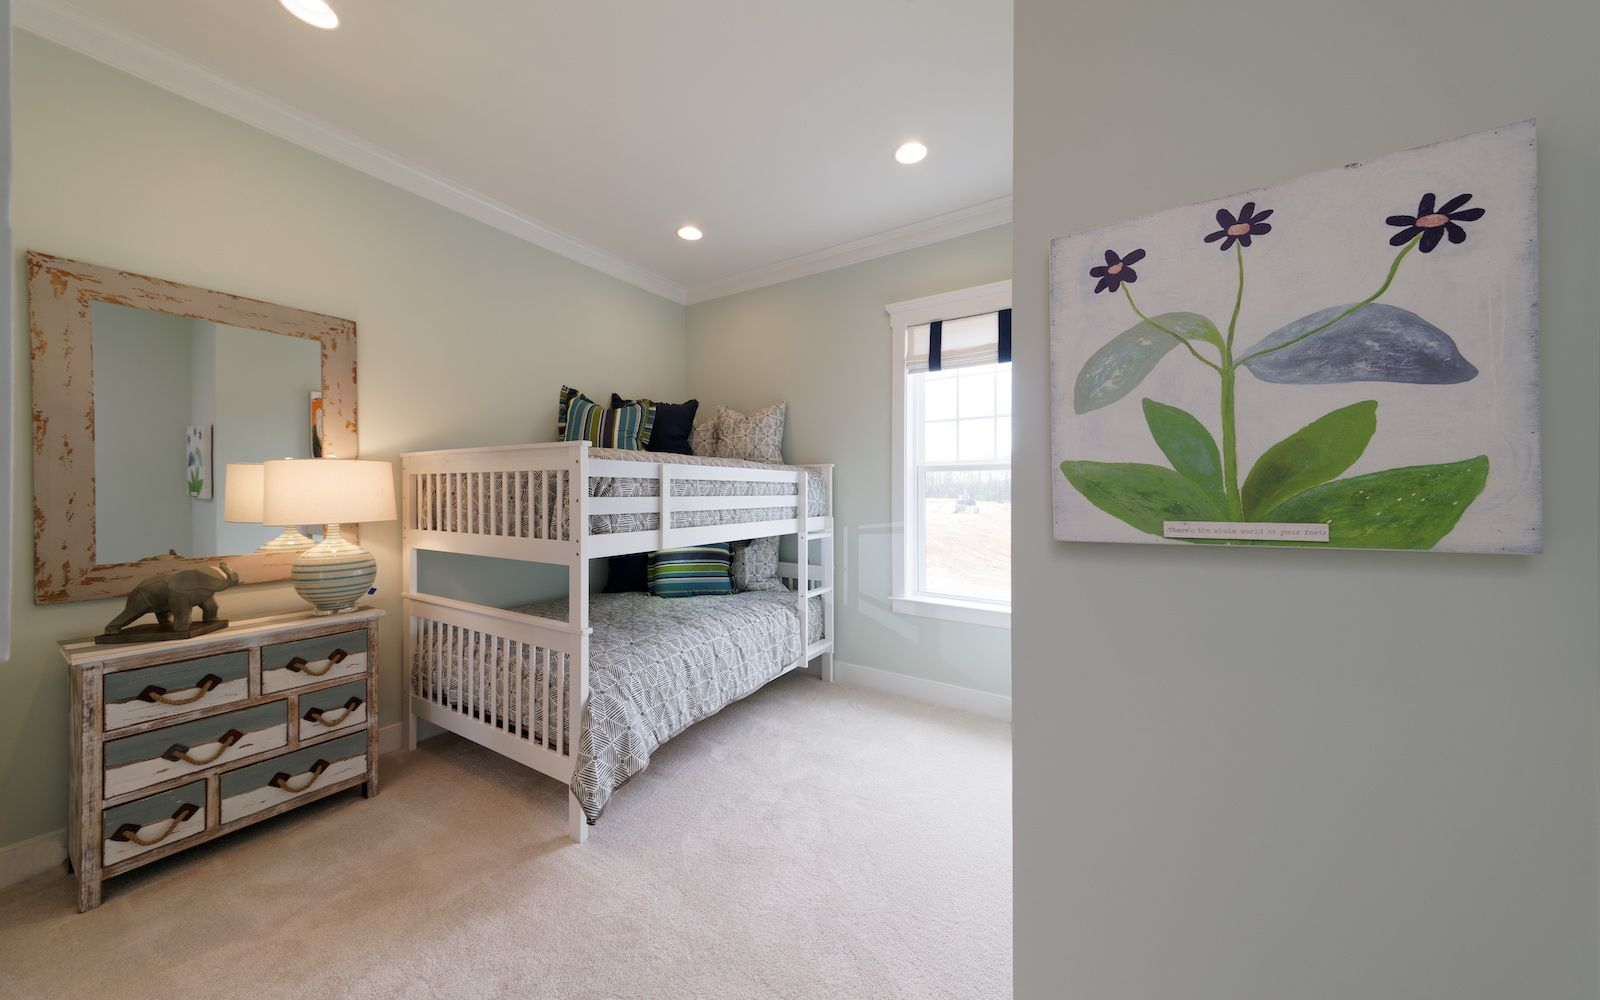 Bedroom featured in the Picasso II By Brookfield Residential in Baltimore, MD